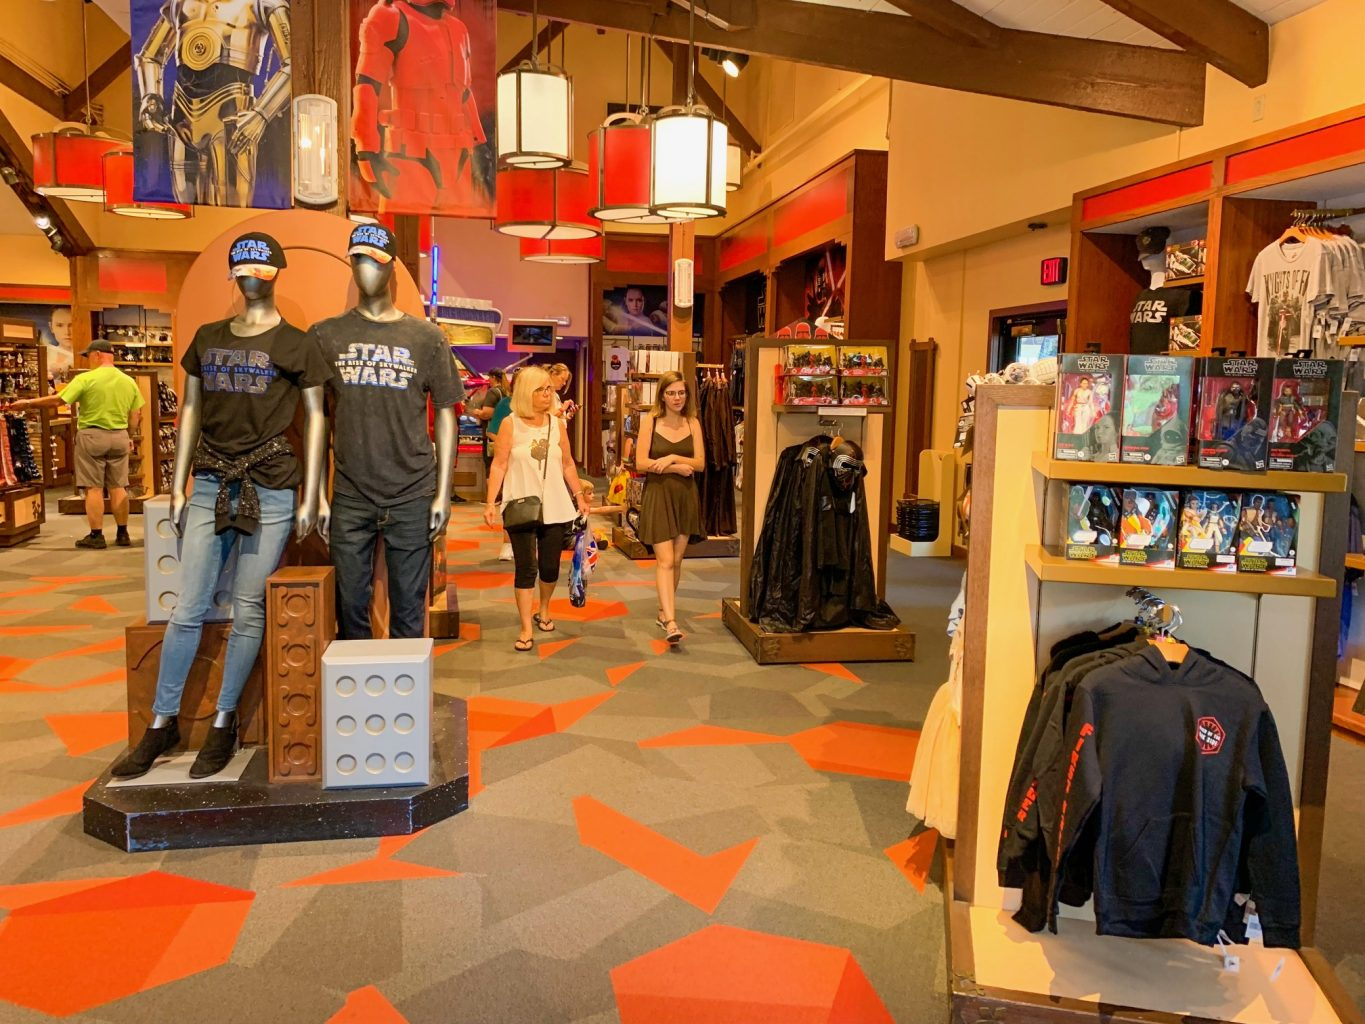 Inside of the Star Wars Trading Post at Disney Springs with large Star Wars artwork on the back wall, tall ceilings, a display in the front right corner with Star Wars clothing, and two mannequins in the center left wearing black Star Wars t shirts, jeans, and black caps with the Star Wars logo.